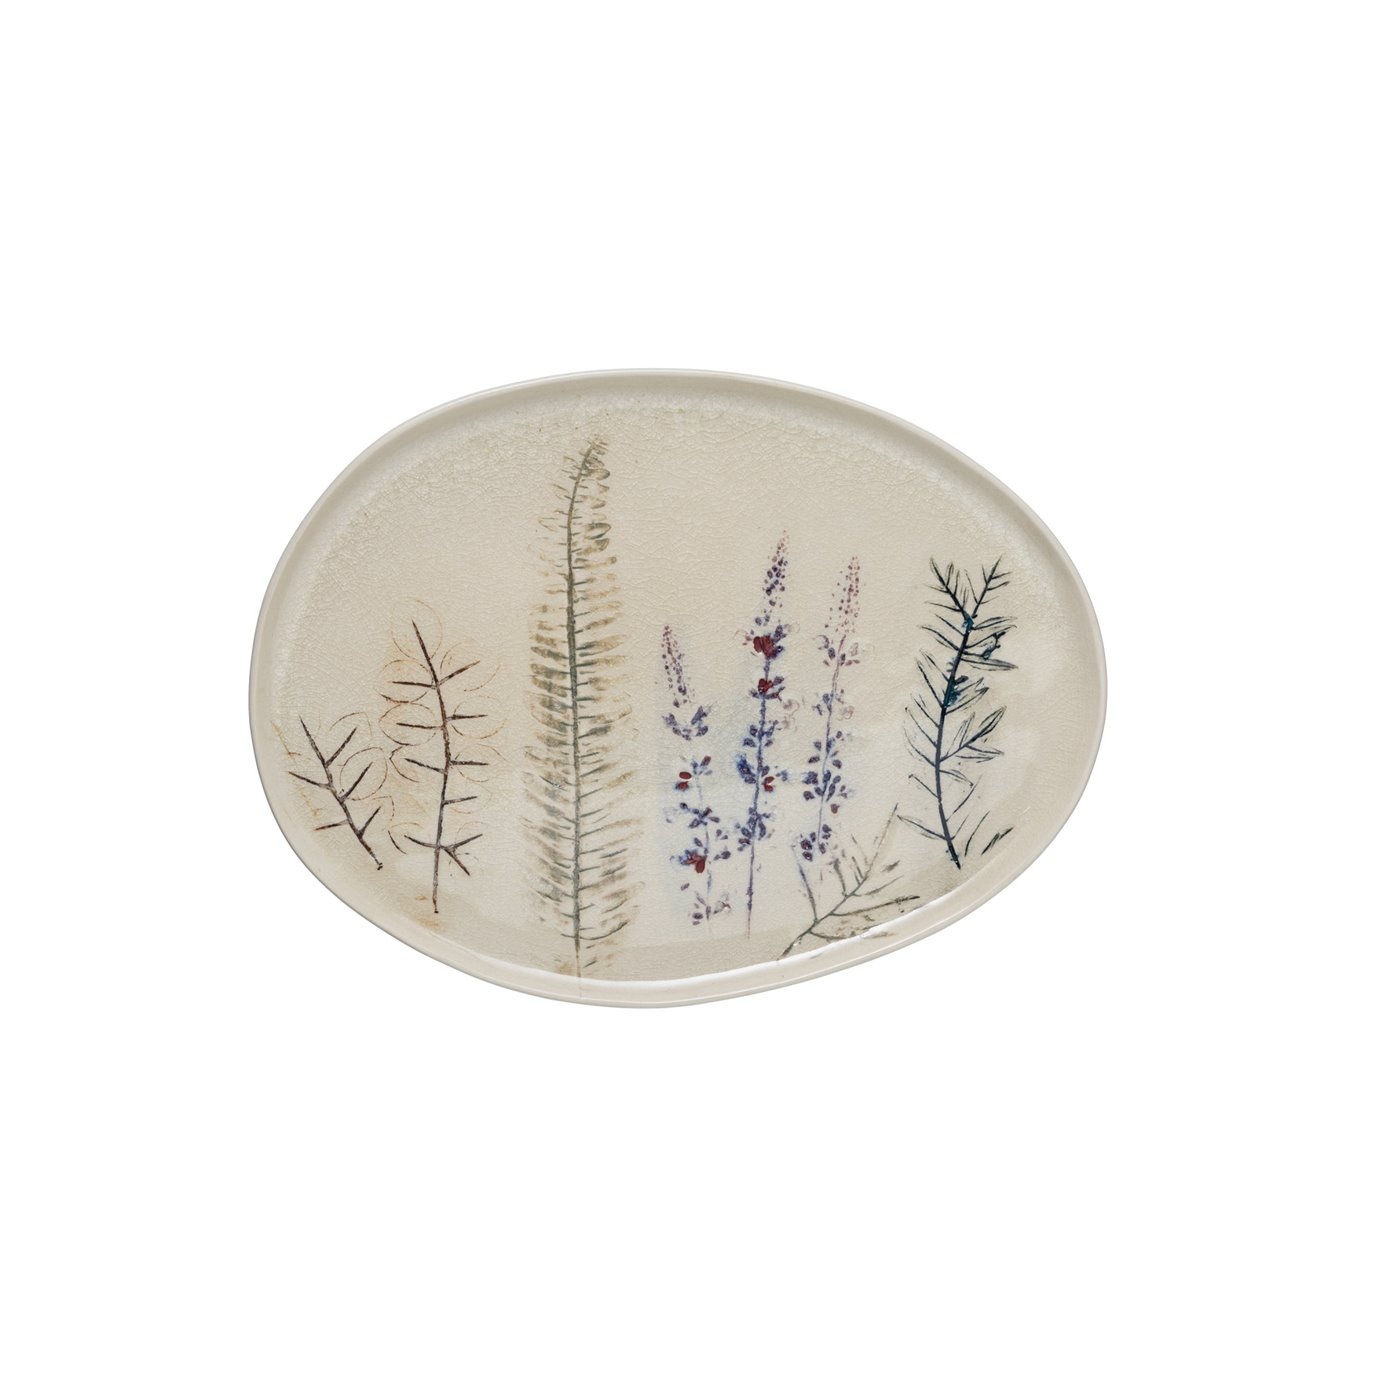 """13.75"""" Oval Debossed Floral Stoneware Platter with Reactive Crackle Glaze Finish (Each one will vary)"""